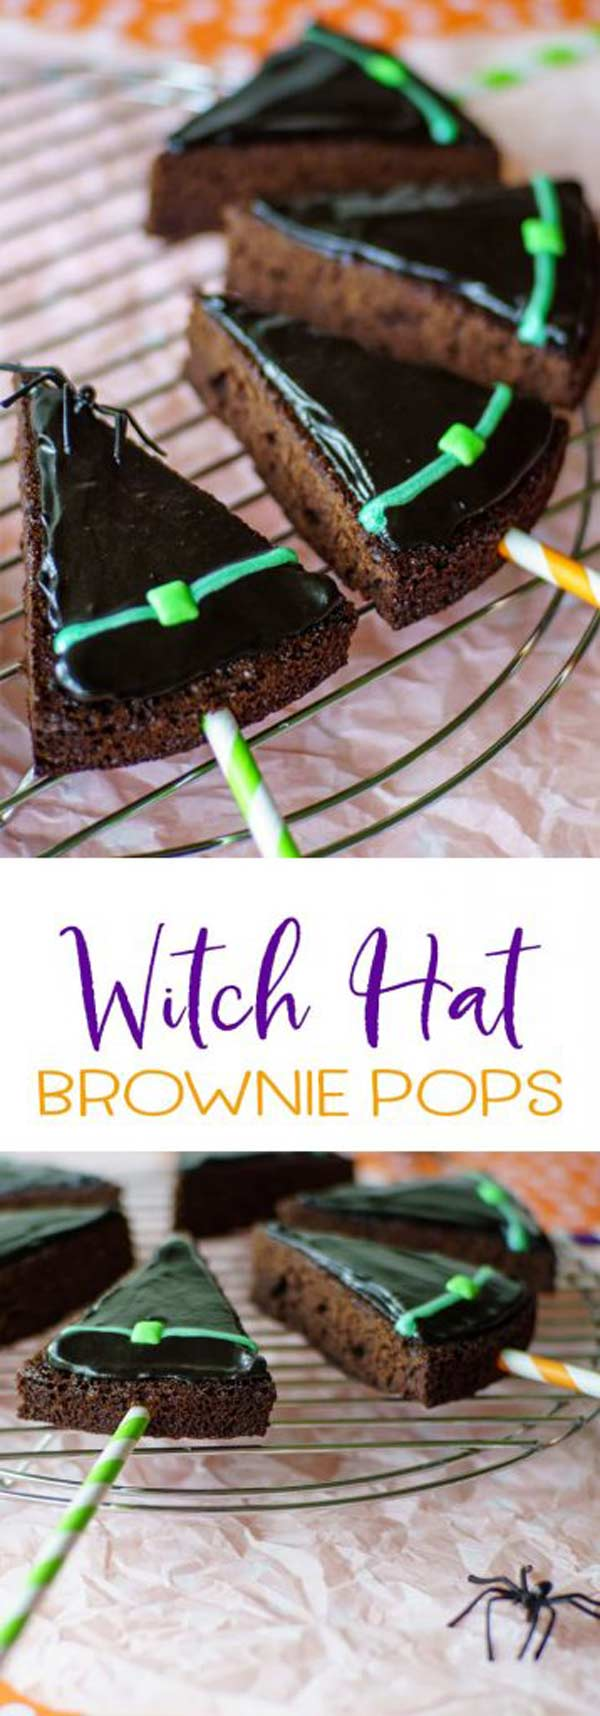 Witch hat brownie pops will be the hit of your Halloween party! Simple to make with a box brownie mix, fast frosting, and an easy piping method! #Halloween #Halloweendesserts #Halloweenparty #MHTAW via @mrsmajorhoff